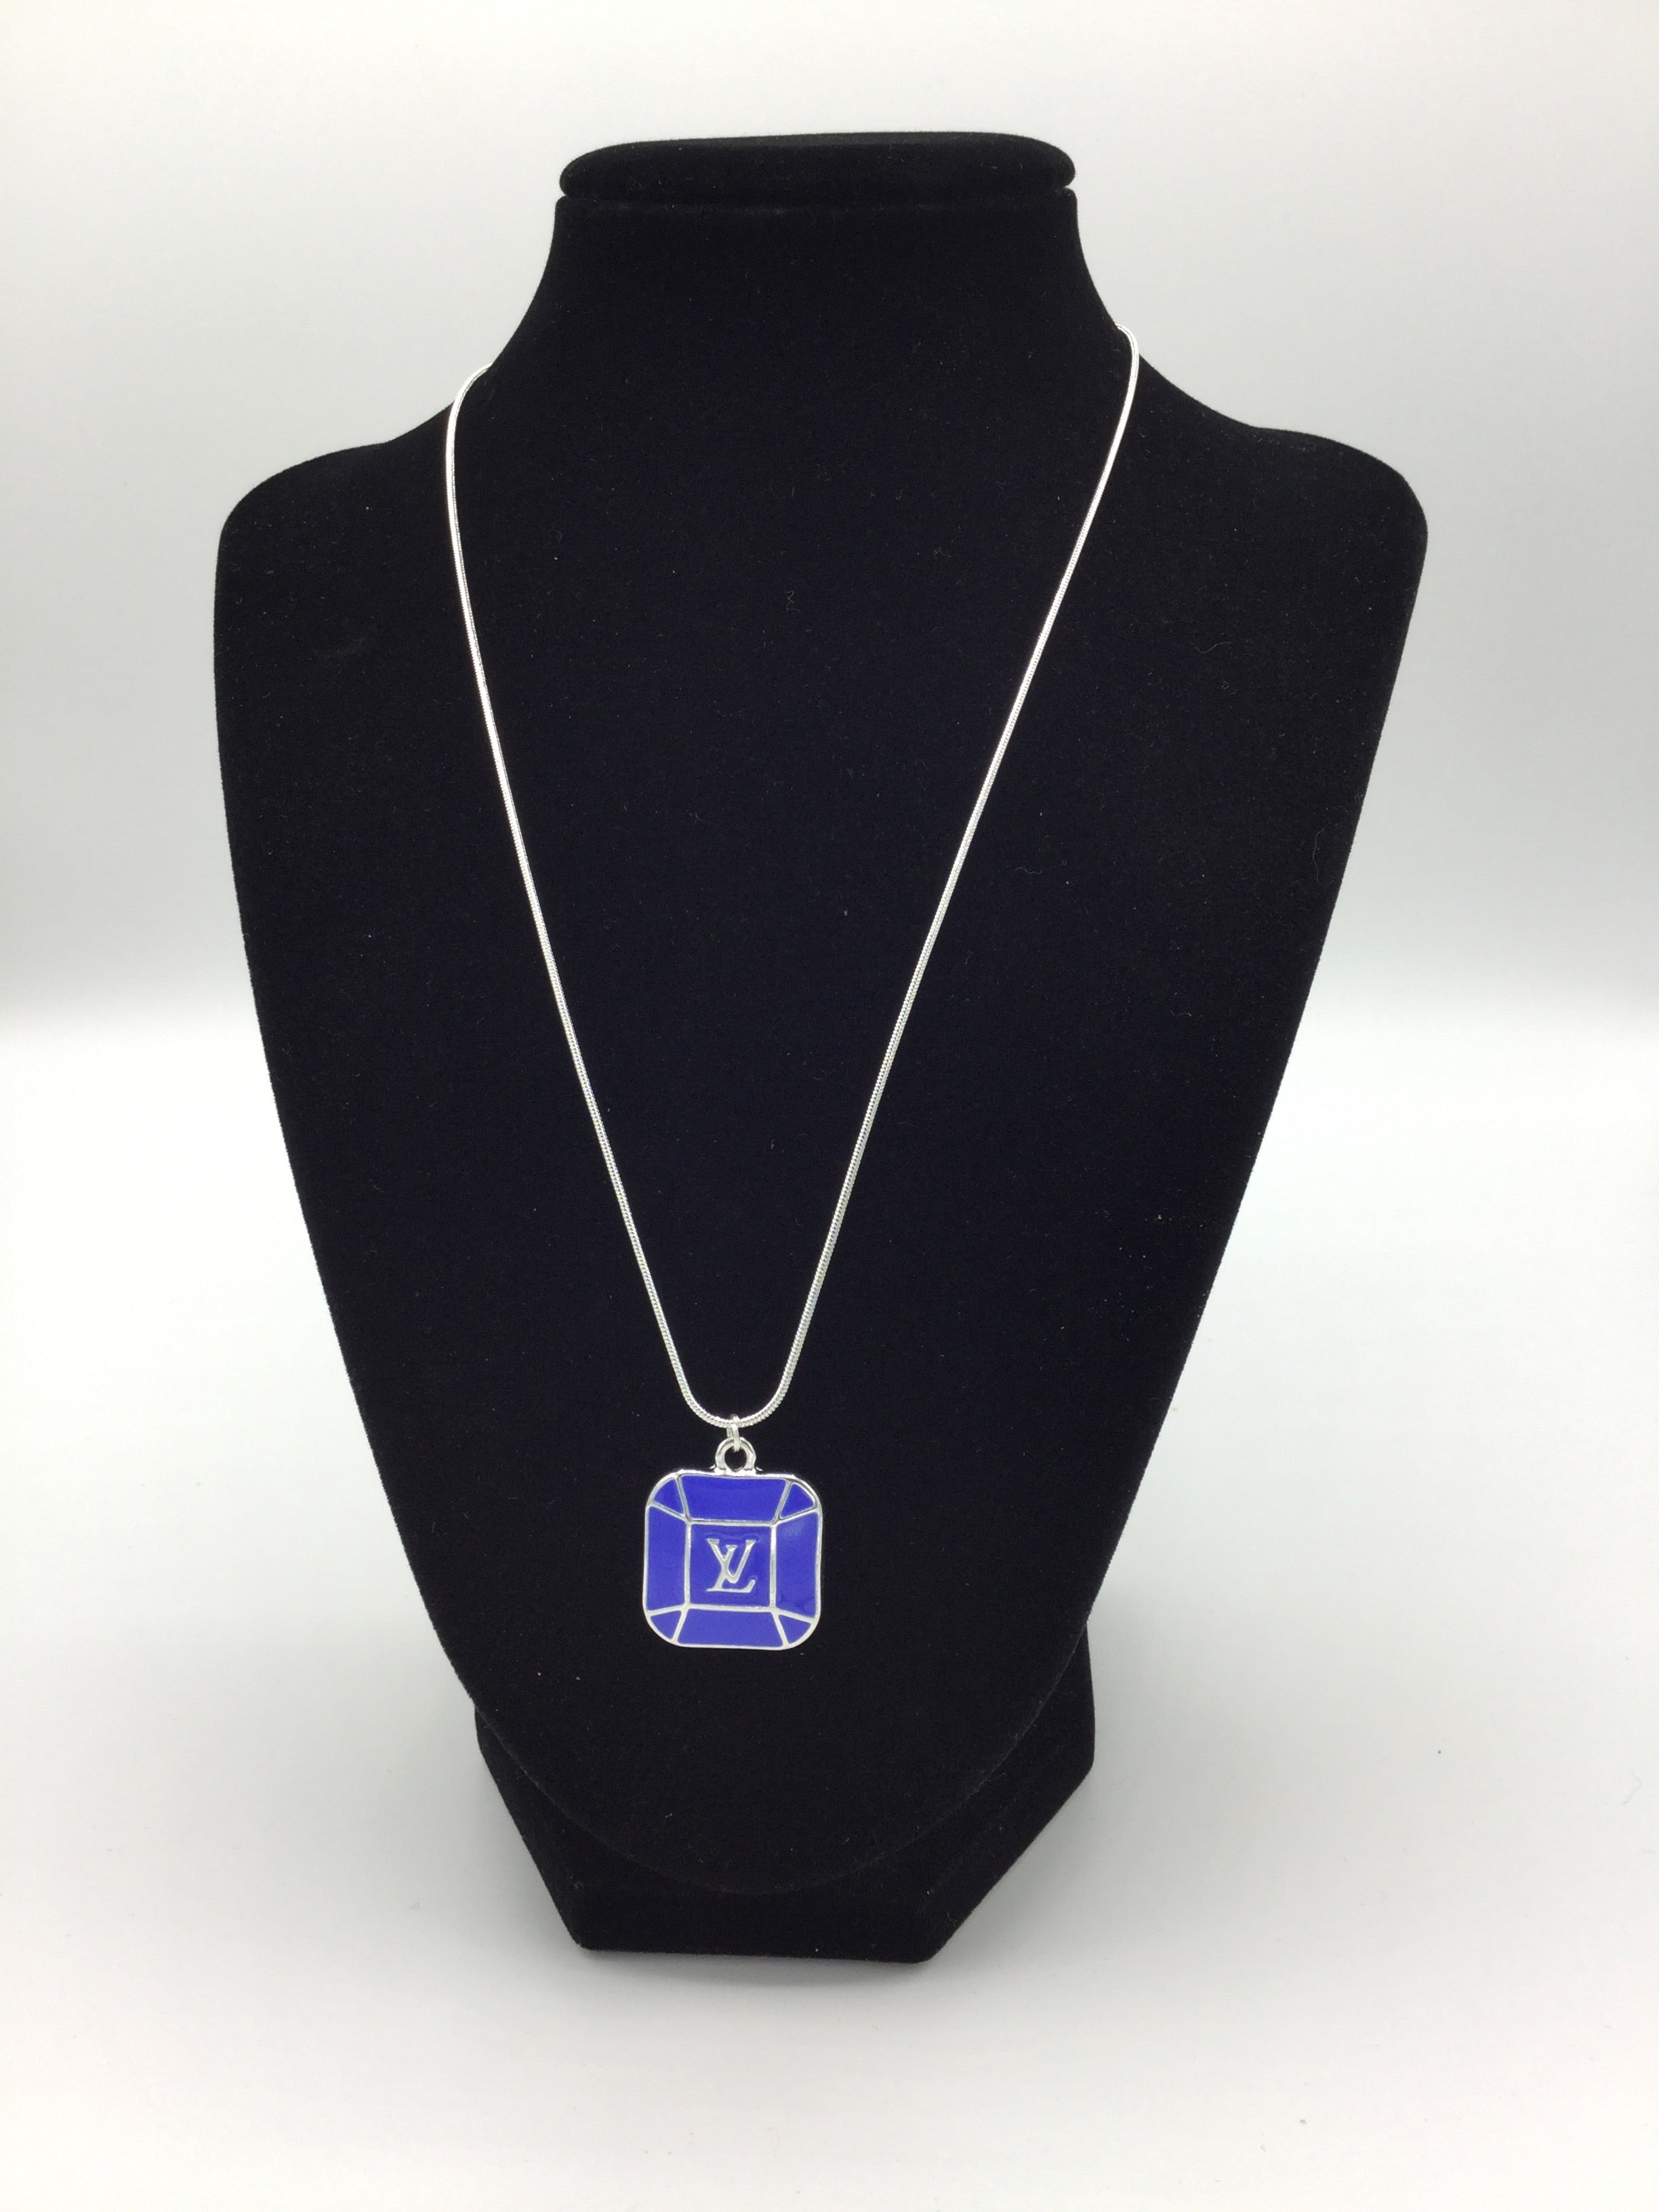 Dark Blue LV Square Charm Necklace